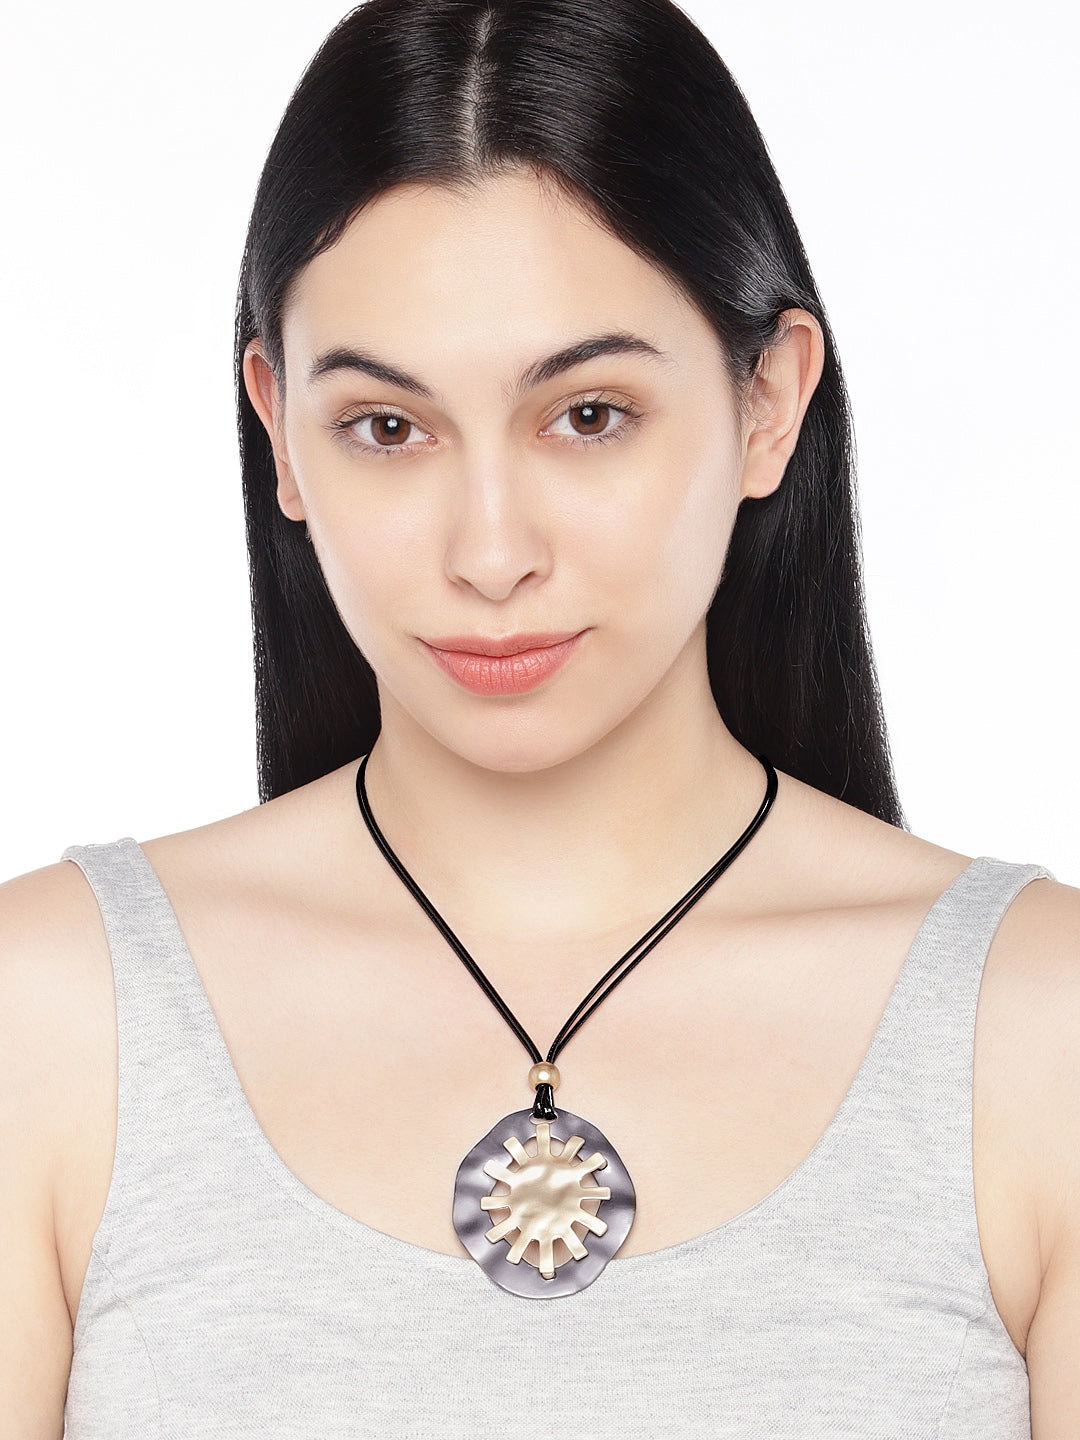 Sun Necklace in Black and Gold - ChicMela